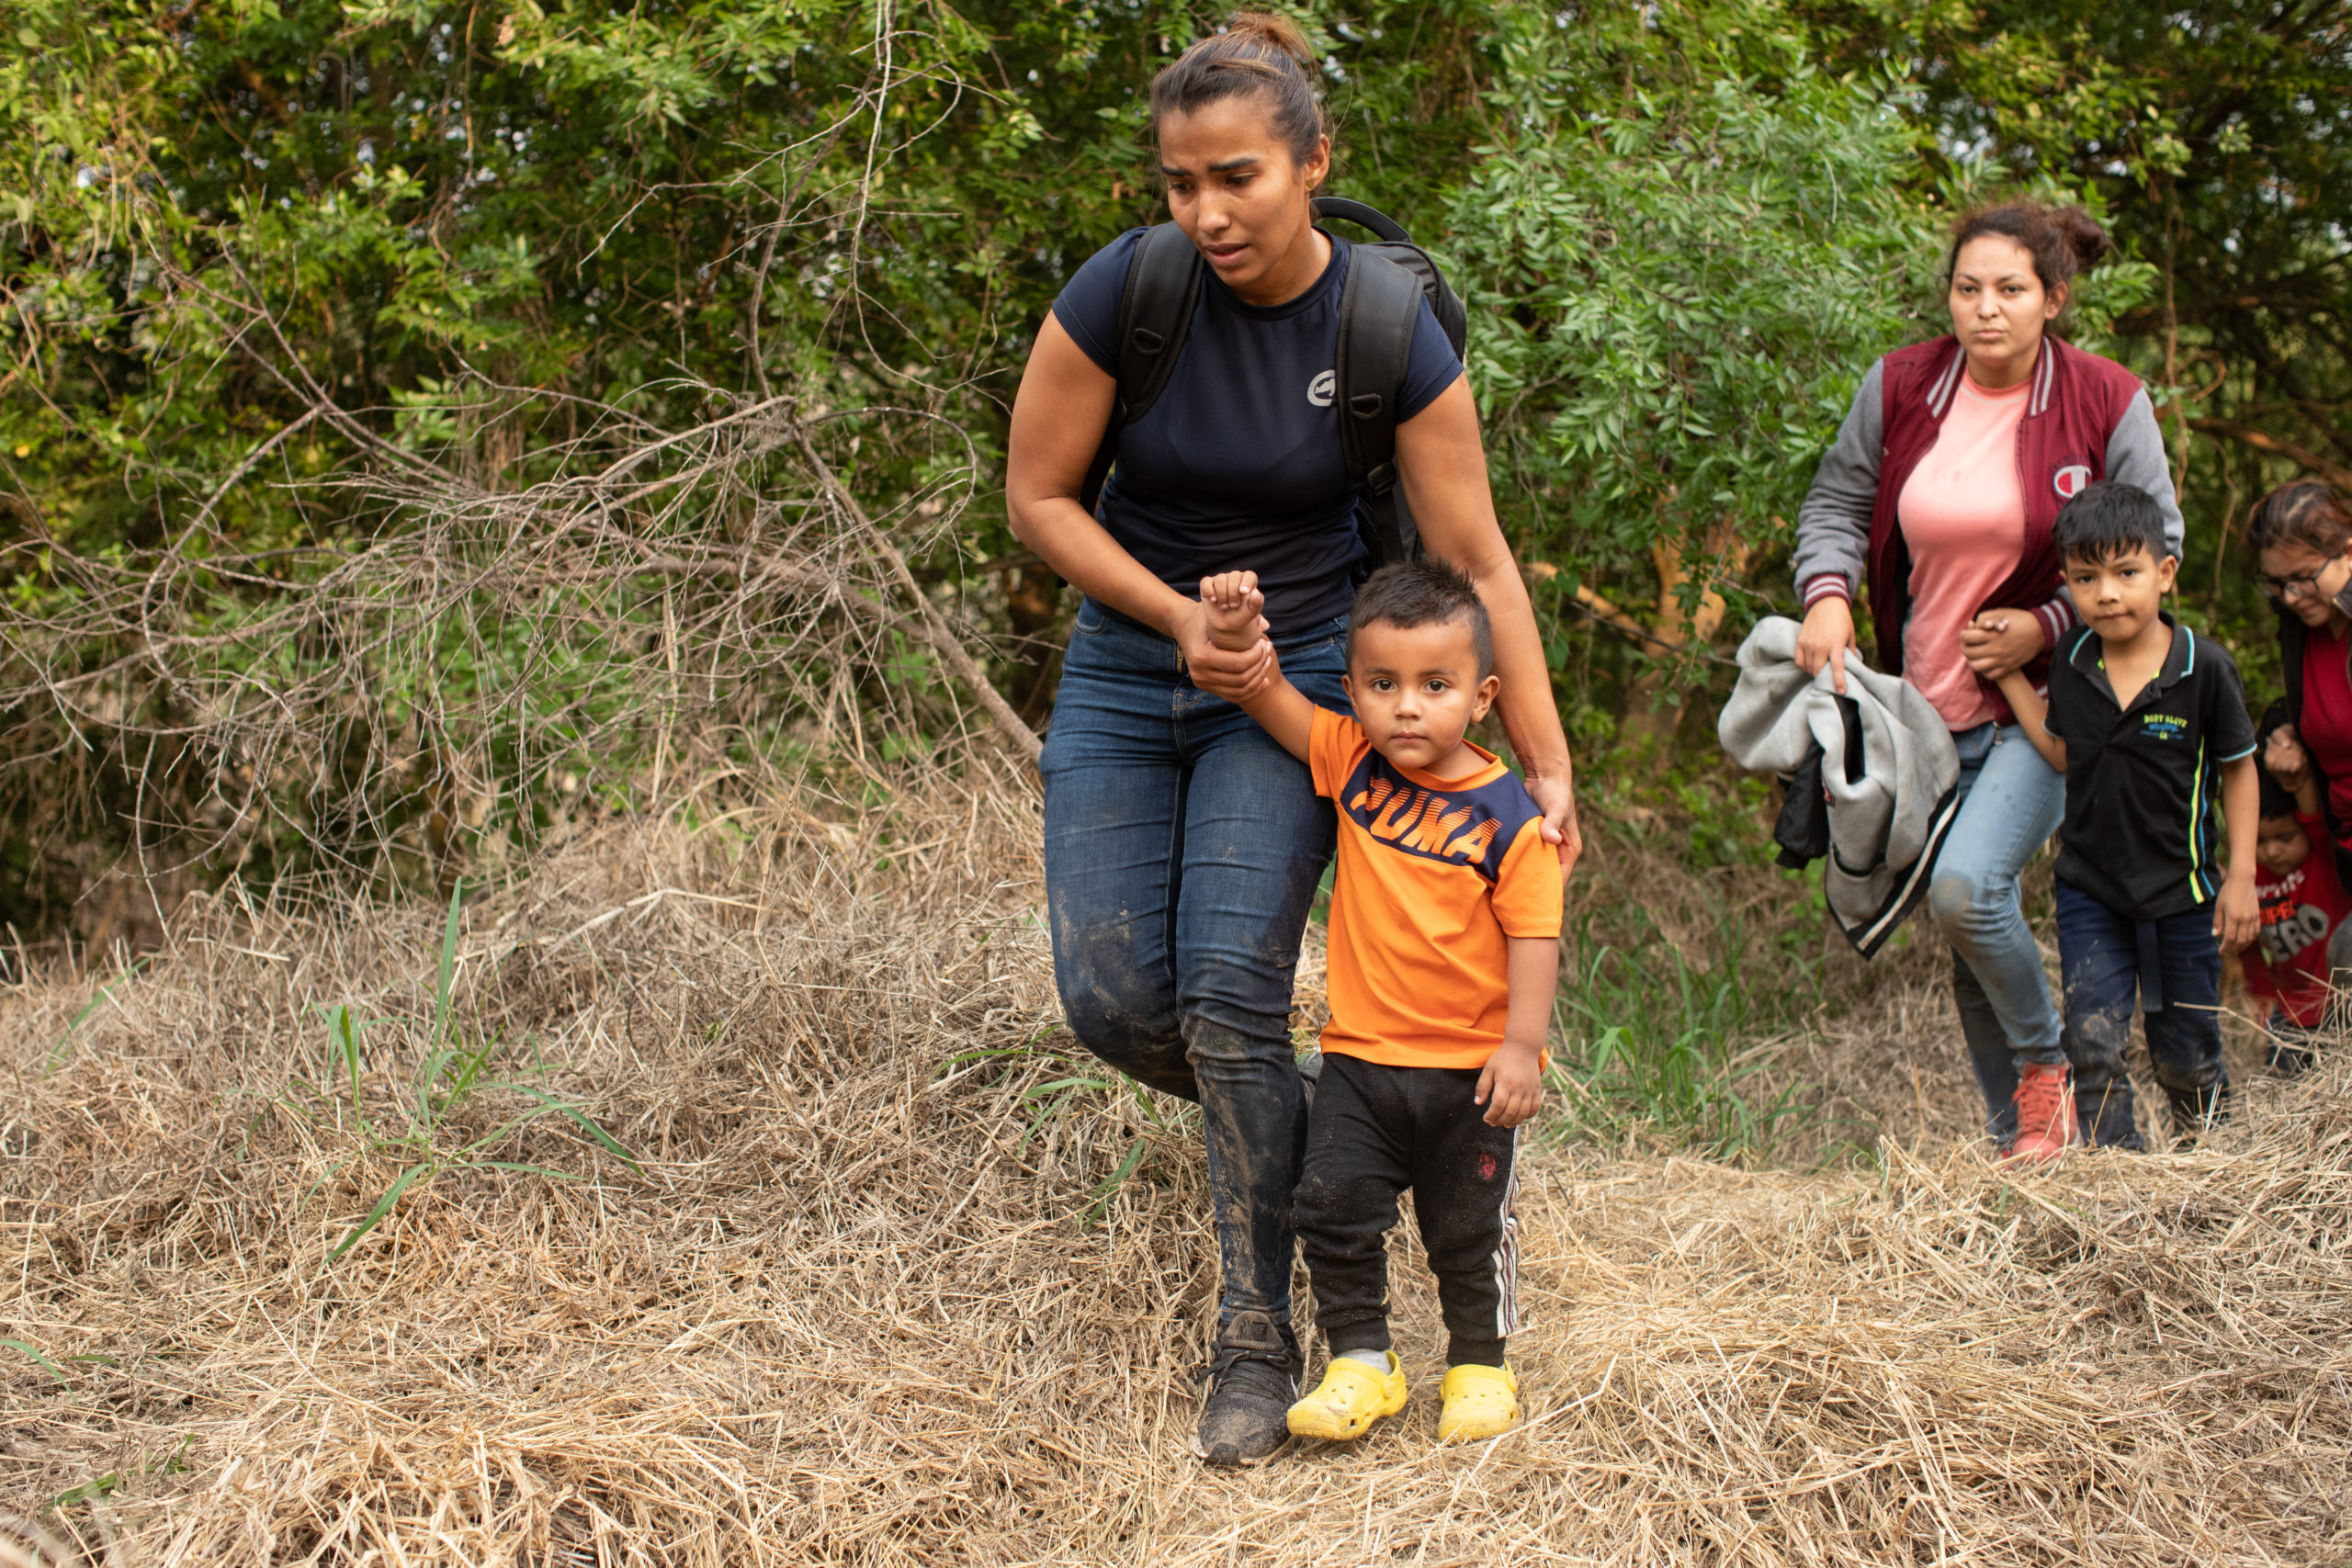 Illegal migrants approach law enforcement officials after they were smuggled into the U.S. to attempt to apply for asylum in Rincon Village near McAllen, Texas, on March 24, 2021. (Kaylee Greenlee – Daily Caller News Foundation)